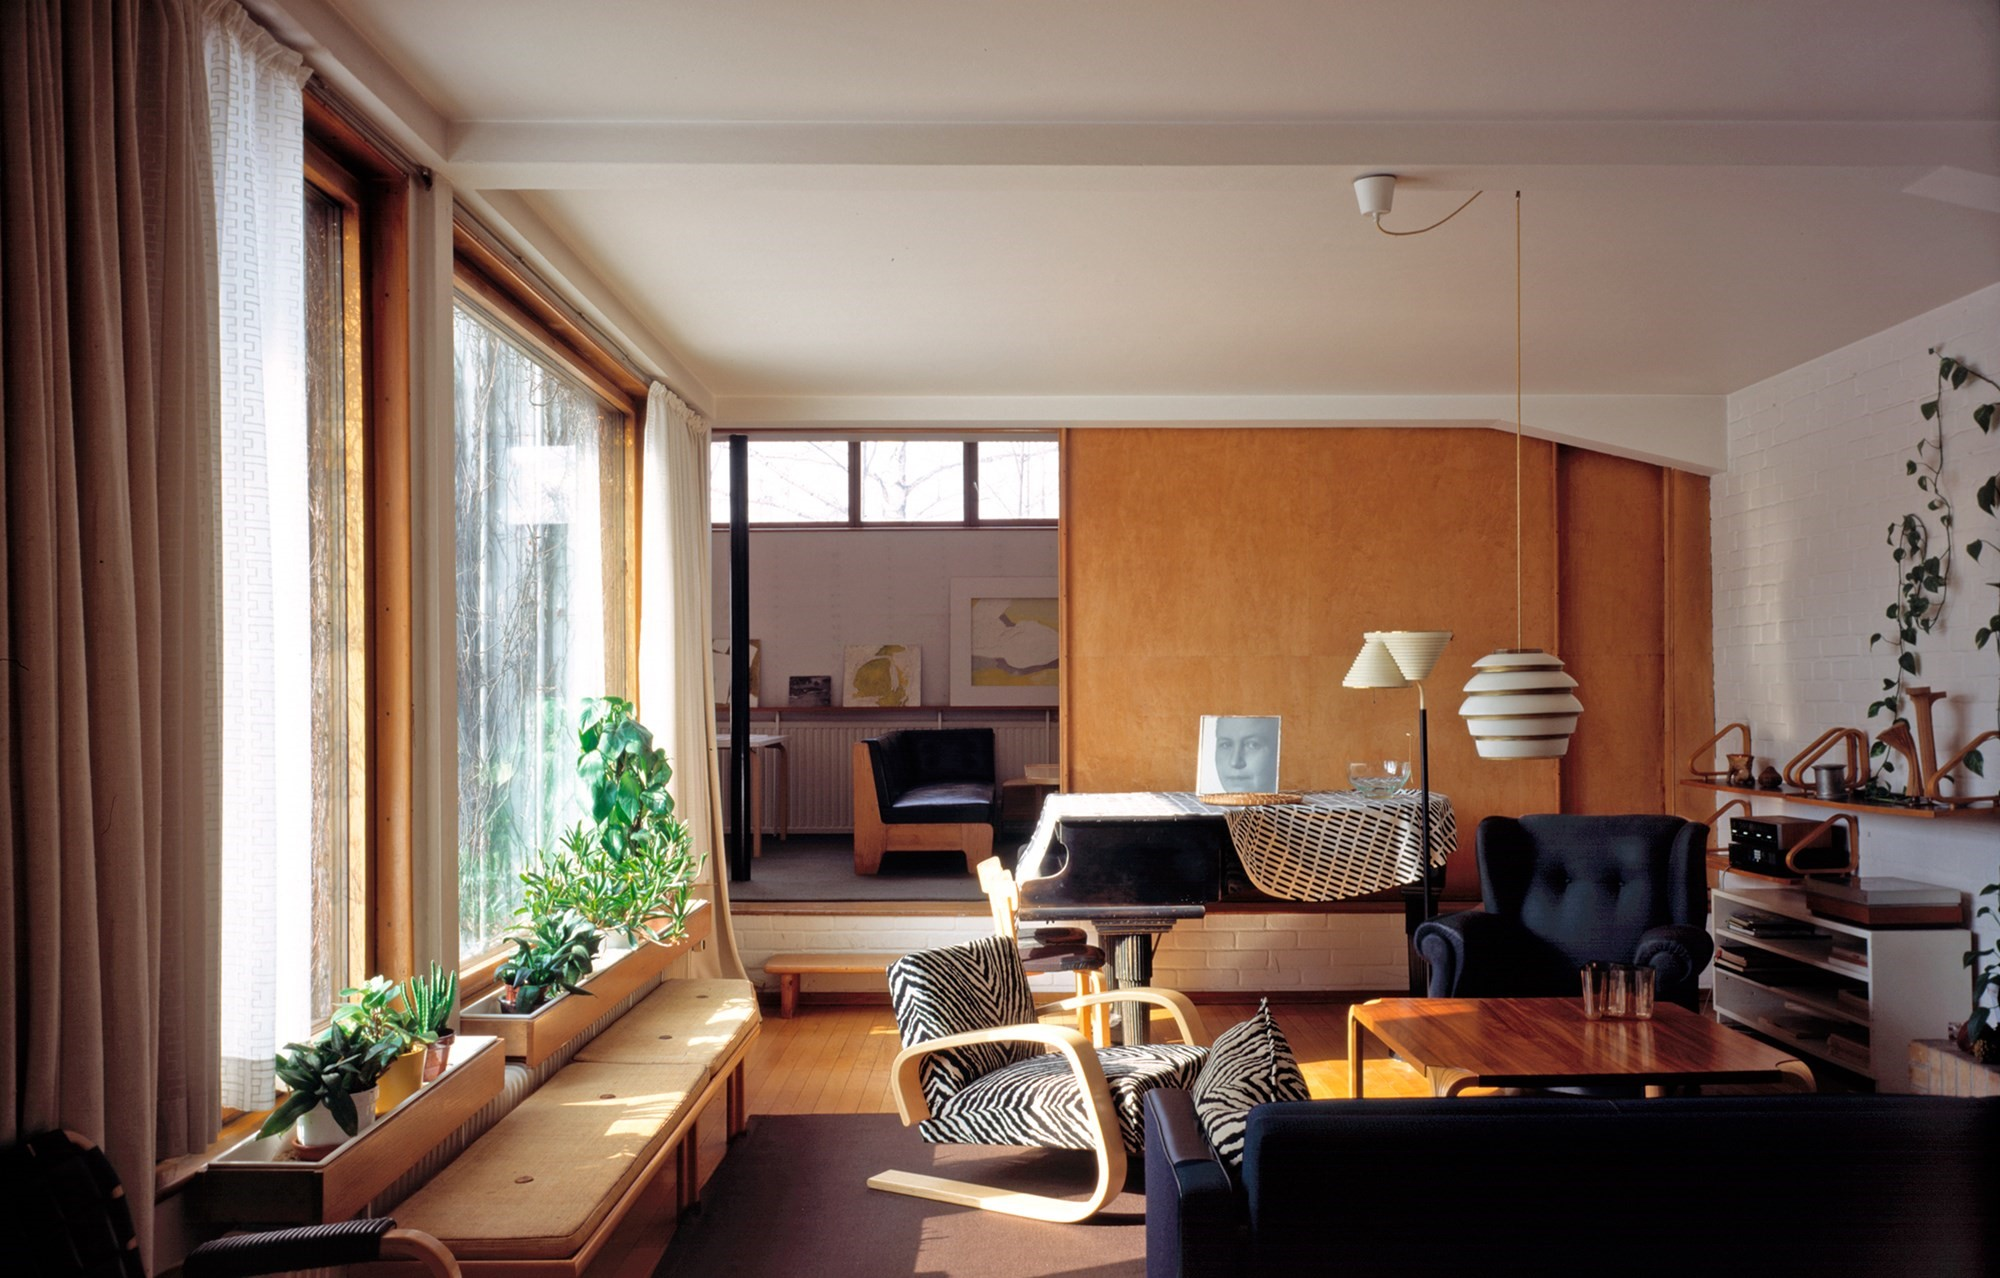 Practical Furniture Ideas for Your Home